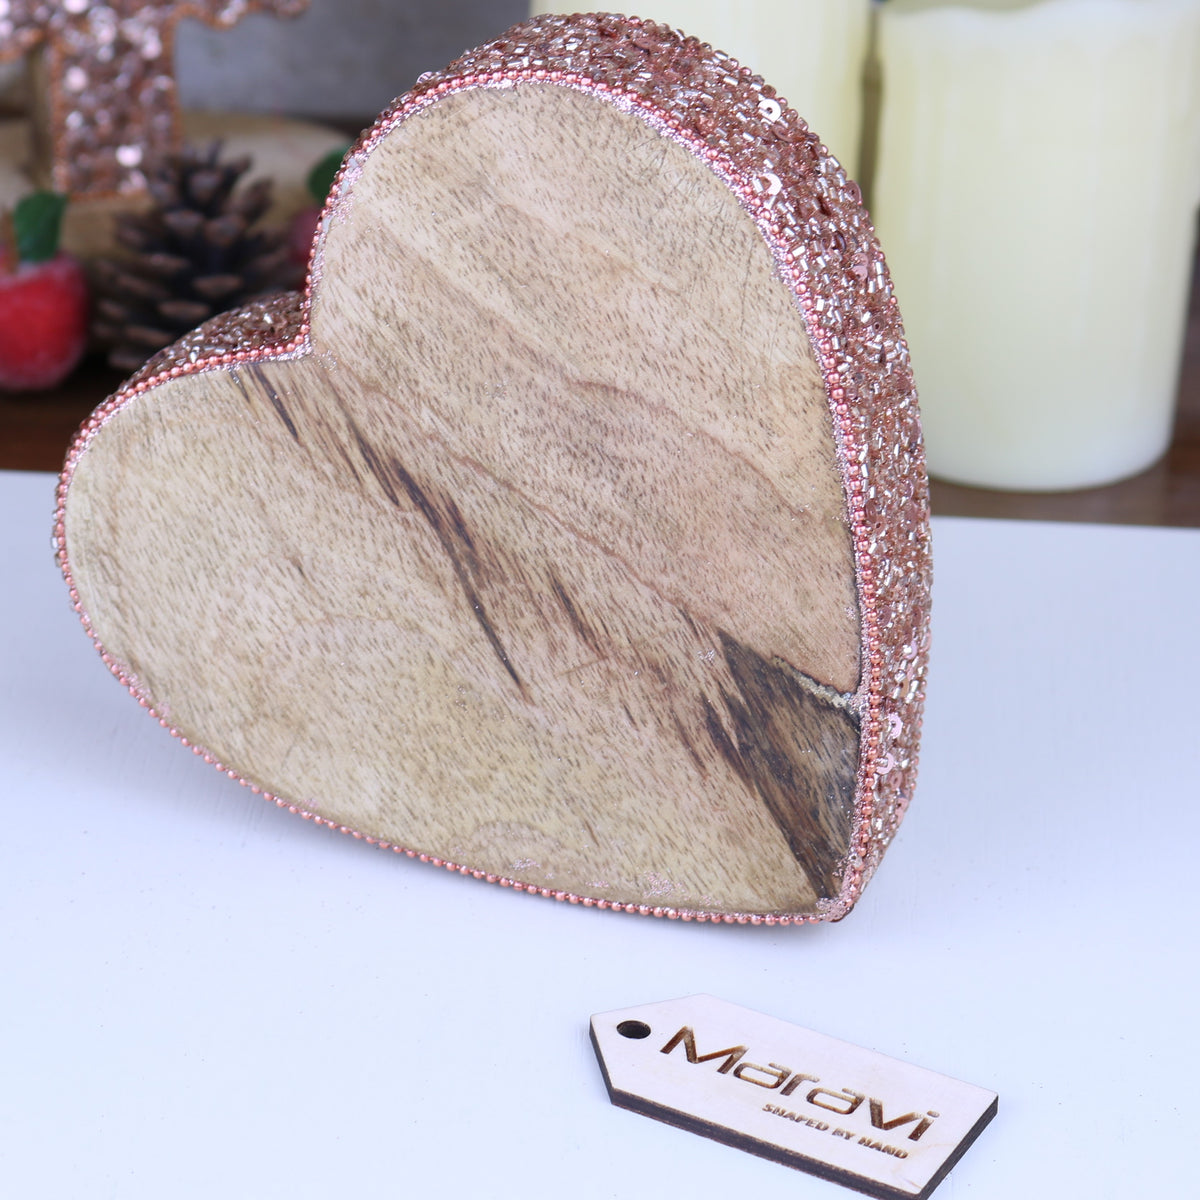 Lovell Decorative Board Heart with Copper Jewel Design